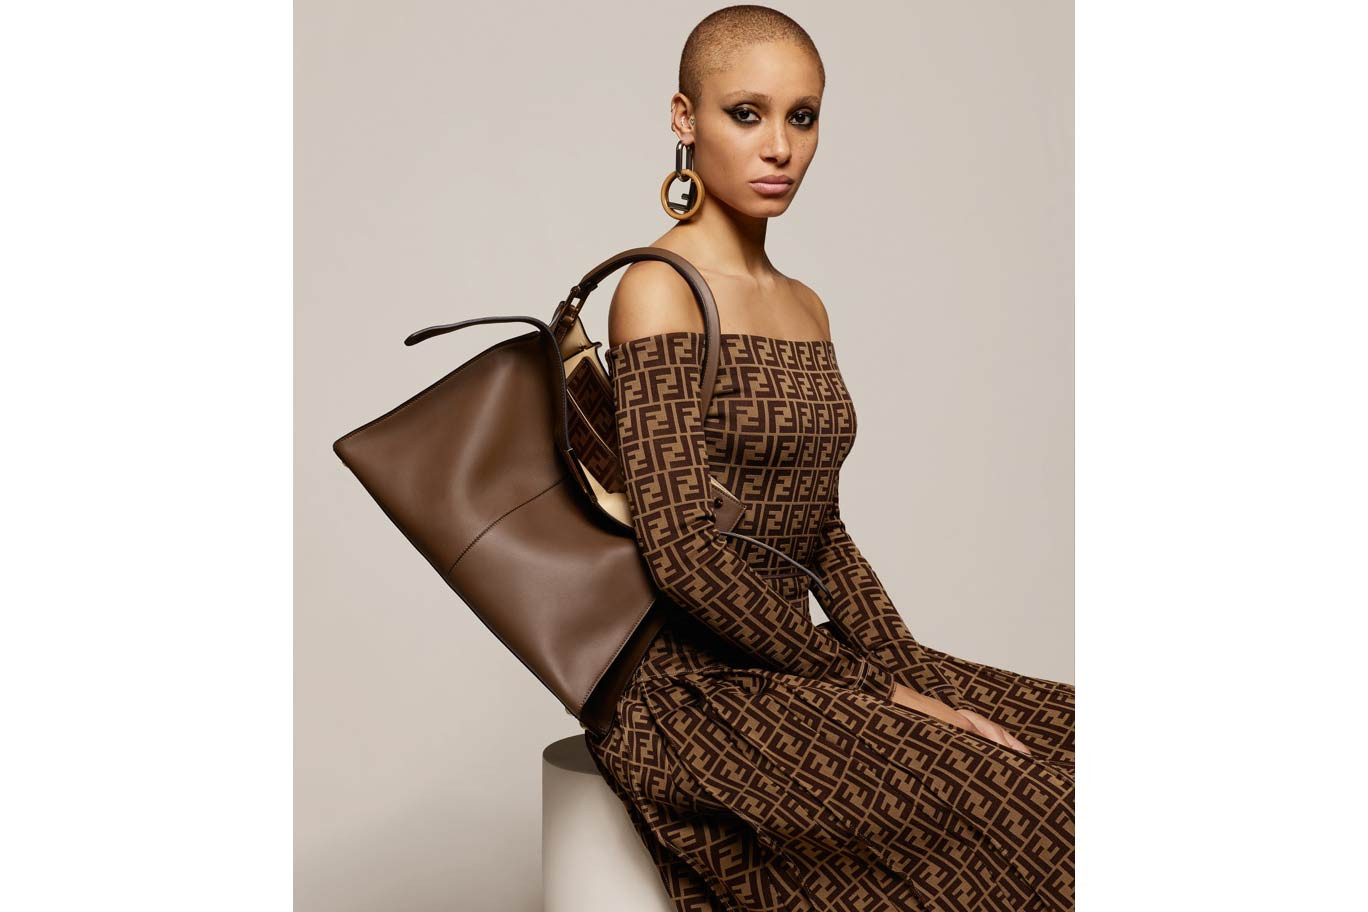 Fendi Fall Winter 2018 Gigi Hadid Adwoa Aboah